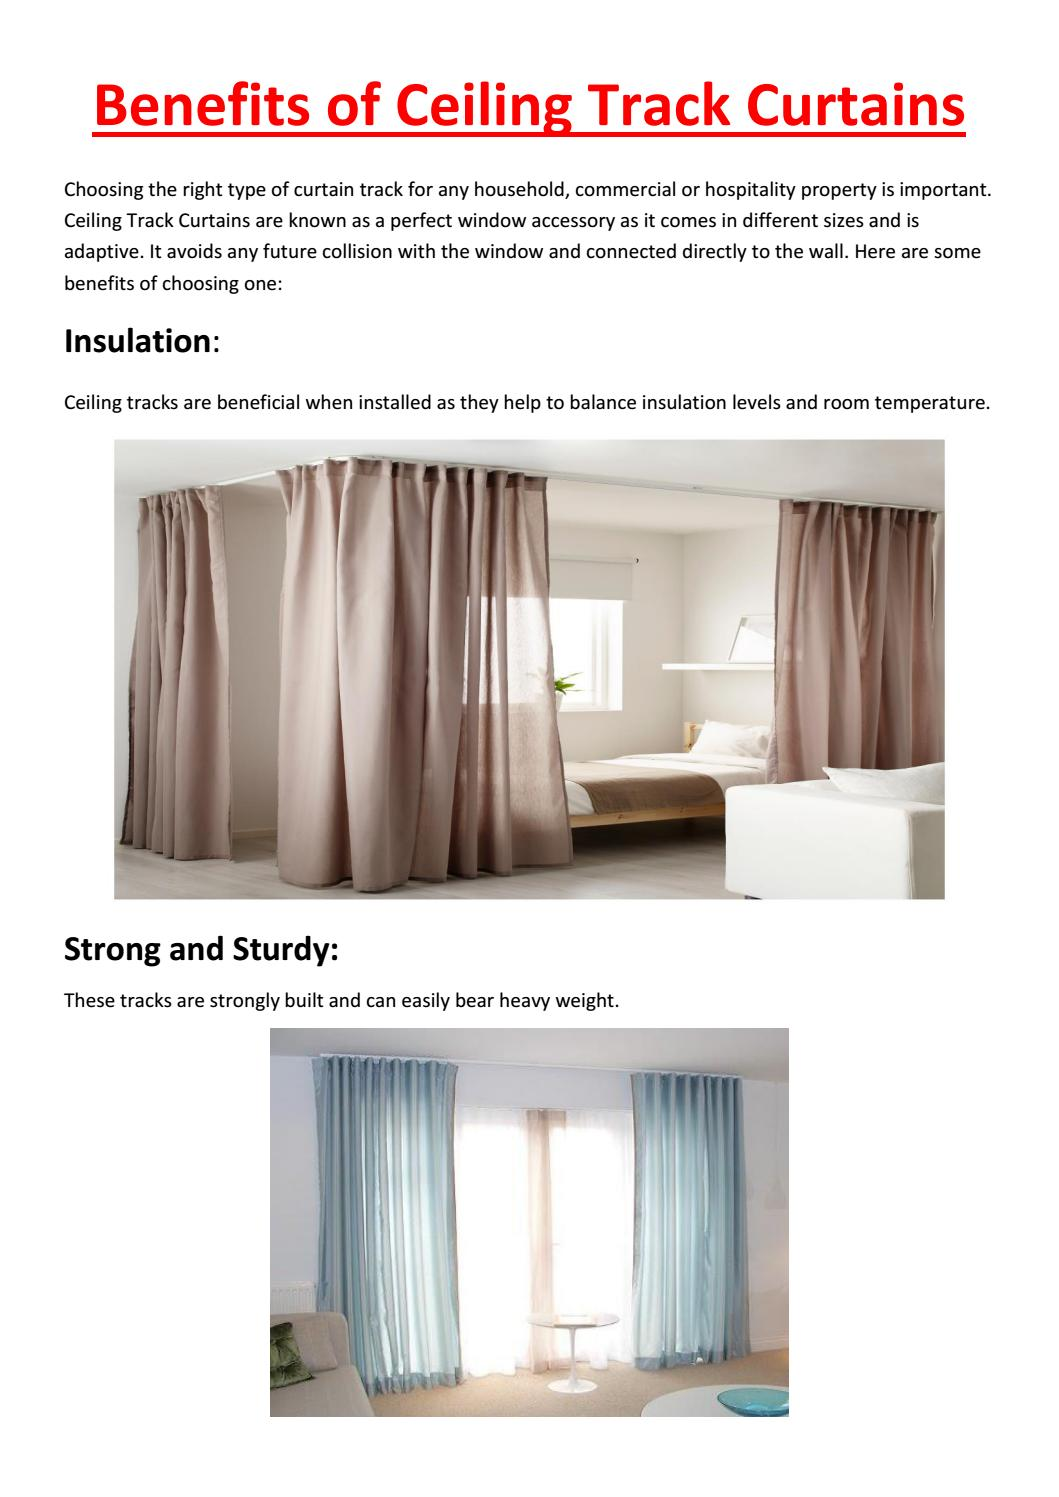 Benefits Of Ceiling Track Curtains By North Shore Trading Issuu